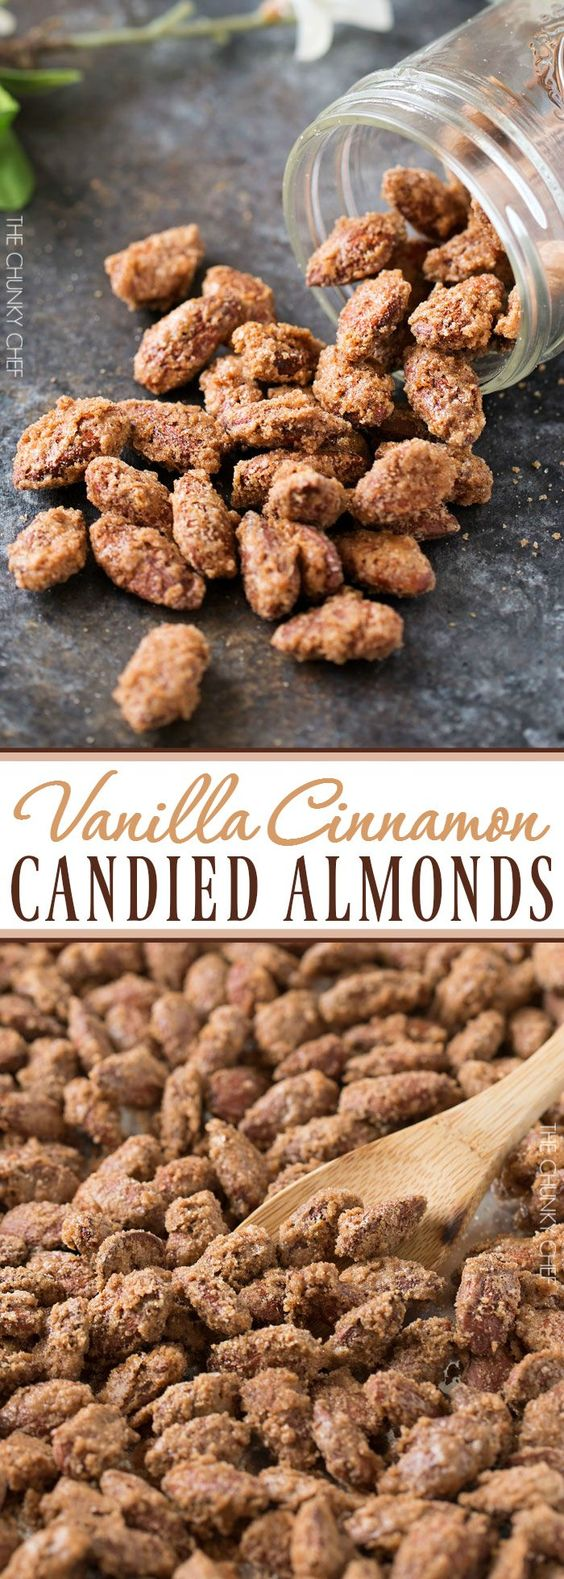 Vanilla Cinnamon Candied Almonds | Sweet, crunchy, roasted candied almonds coated in a mouthwatering vanilla and cinnamon crust! | http://thechunkychef.com